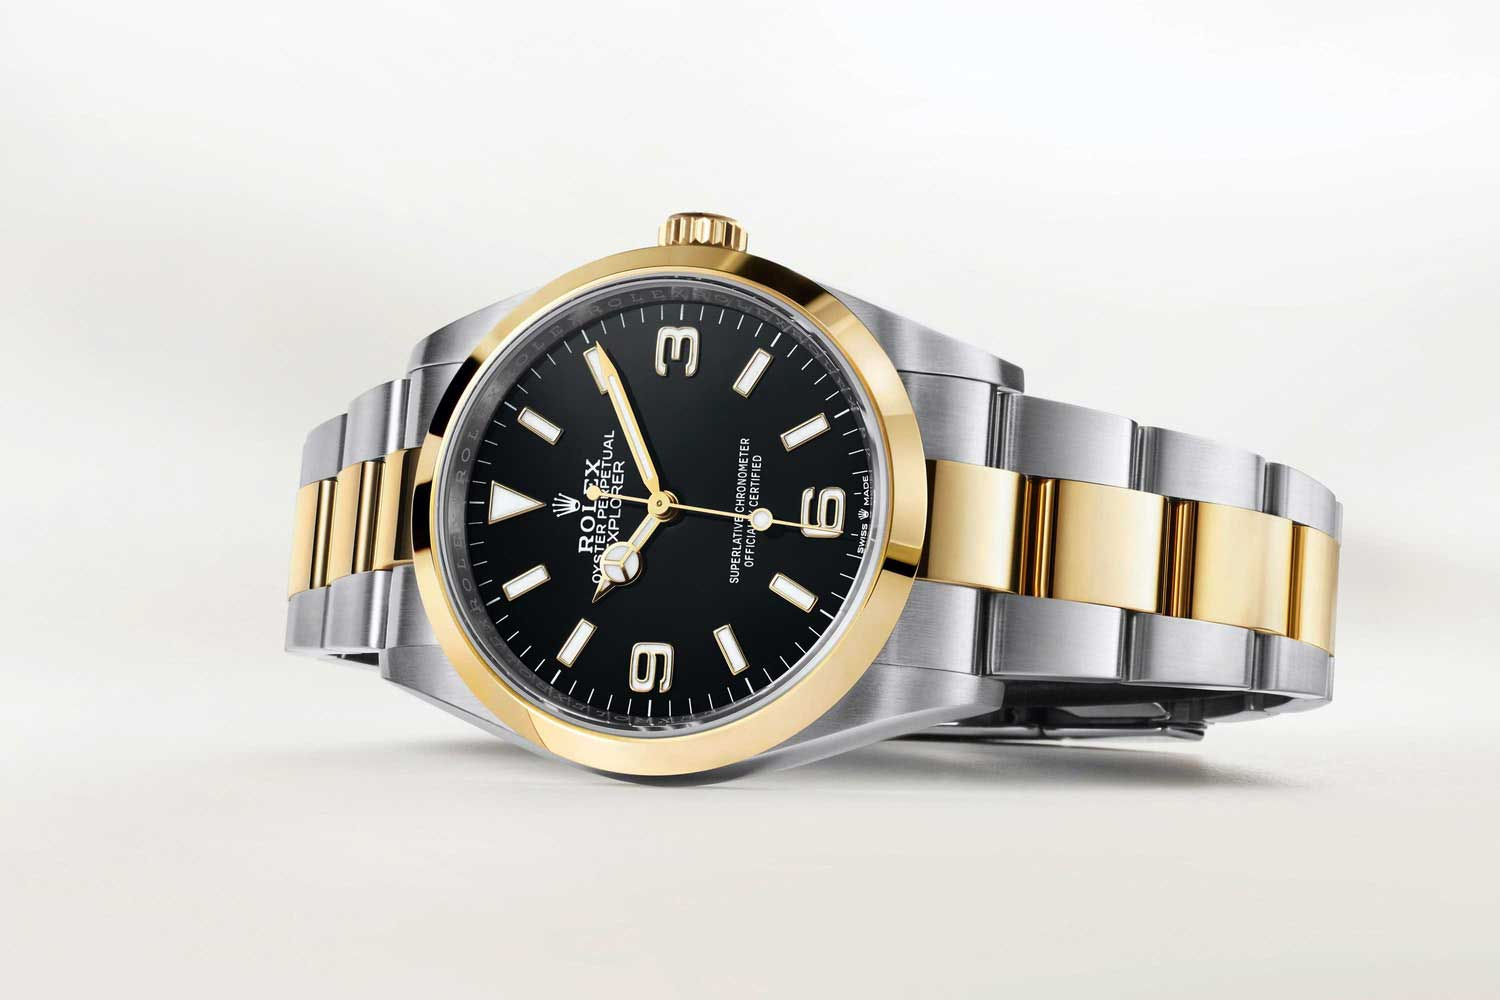 This year, Rolex relaunched the Explorer in its familiar 36mm guise and has expanded the line with a Rolesor yellow gold and Oystersteel version.